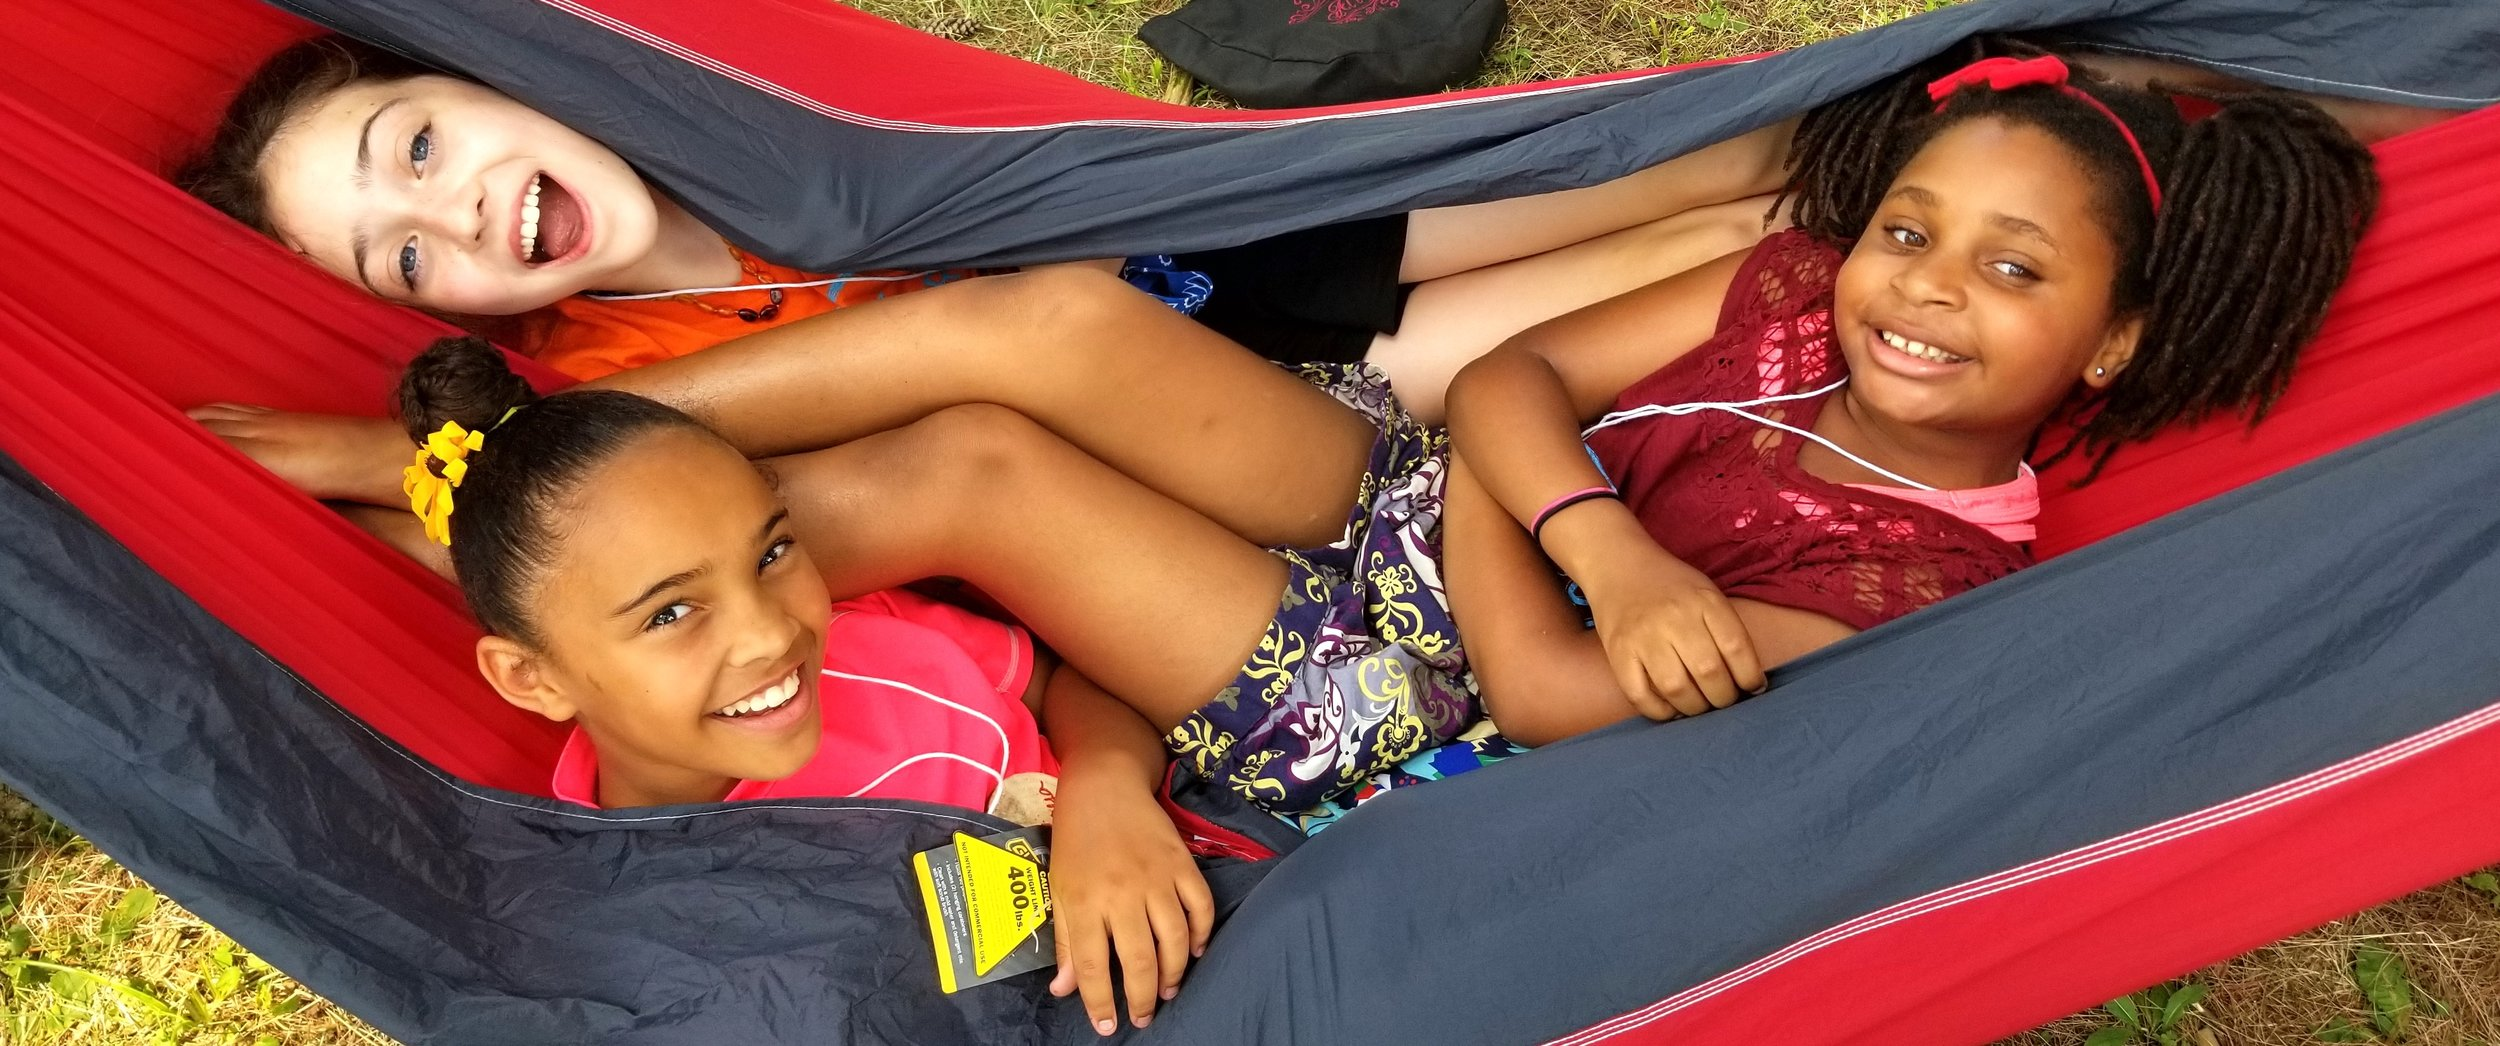 Climate Camp is about having fun, too! Week One, one of our youth counselors, Alli, brought a half dozen hammocks to share. The kids loved it! Hammocks are now part of our Climate Camp curriculum!